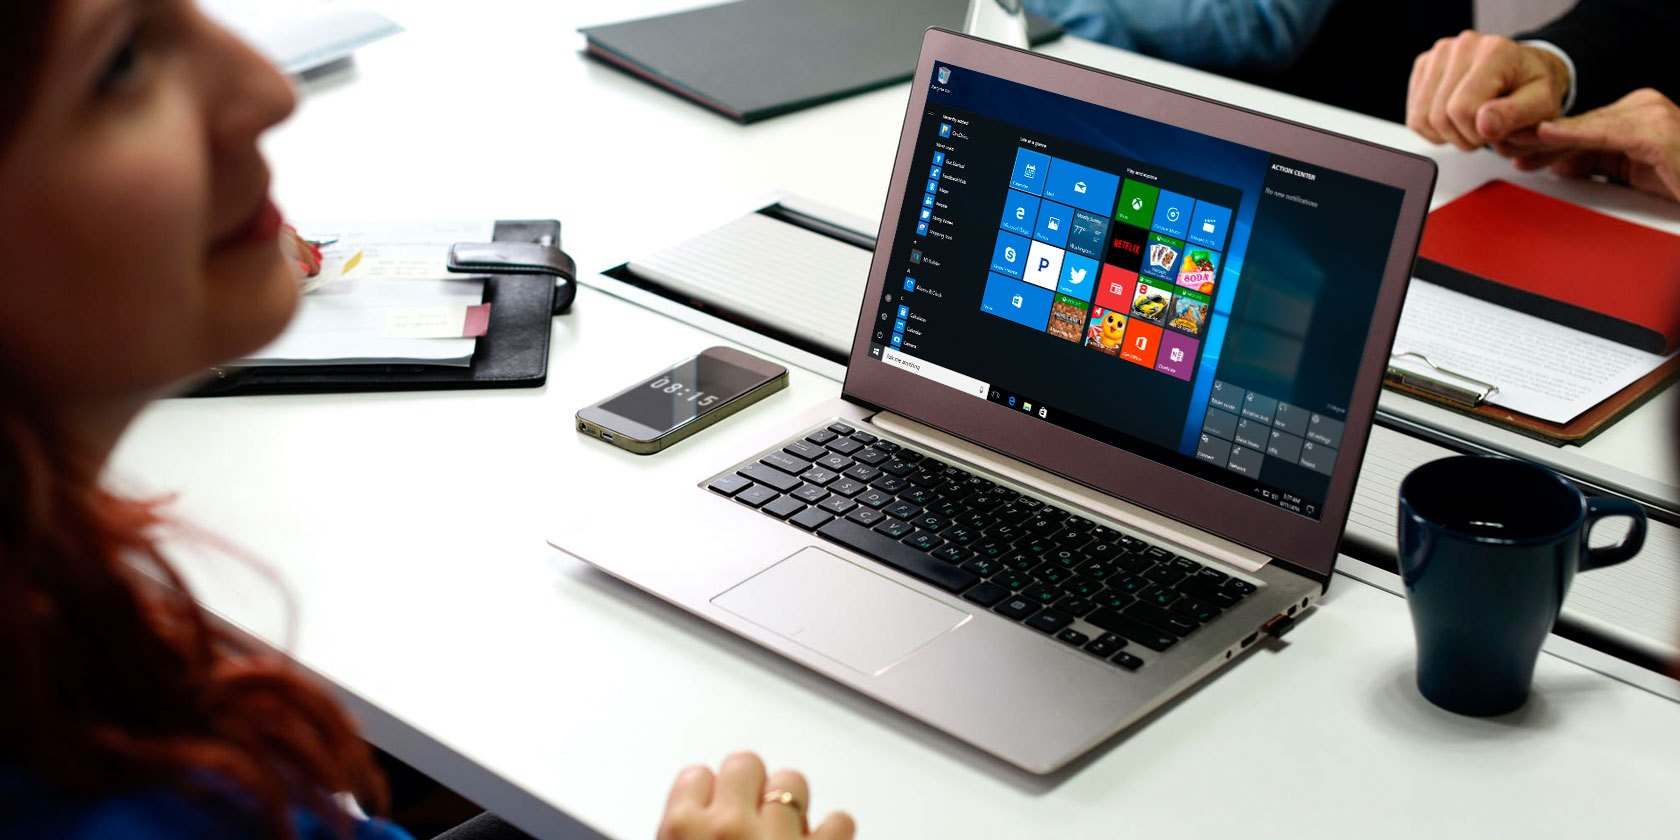 How to Check What Version of Windows 10 You Have